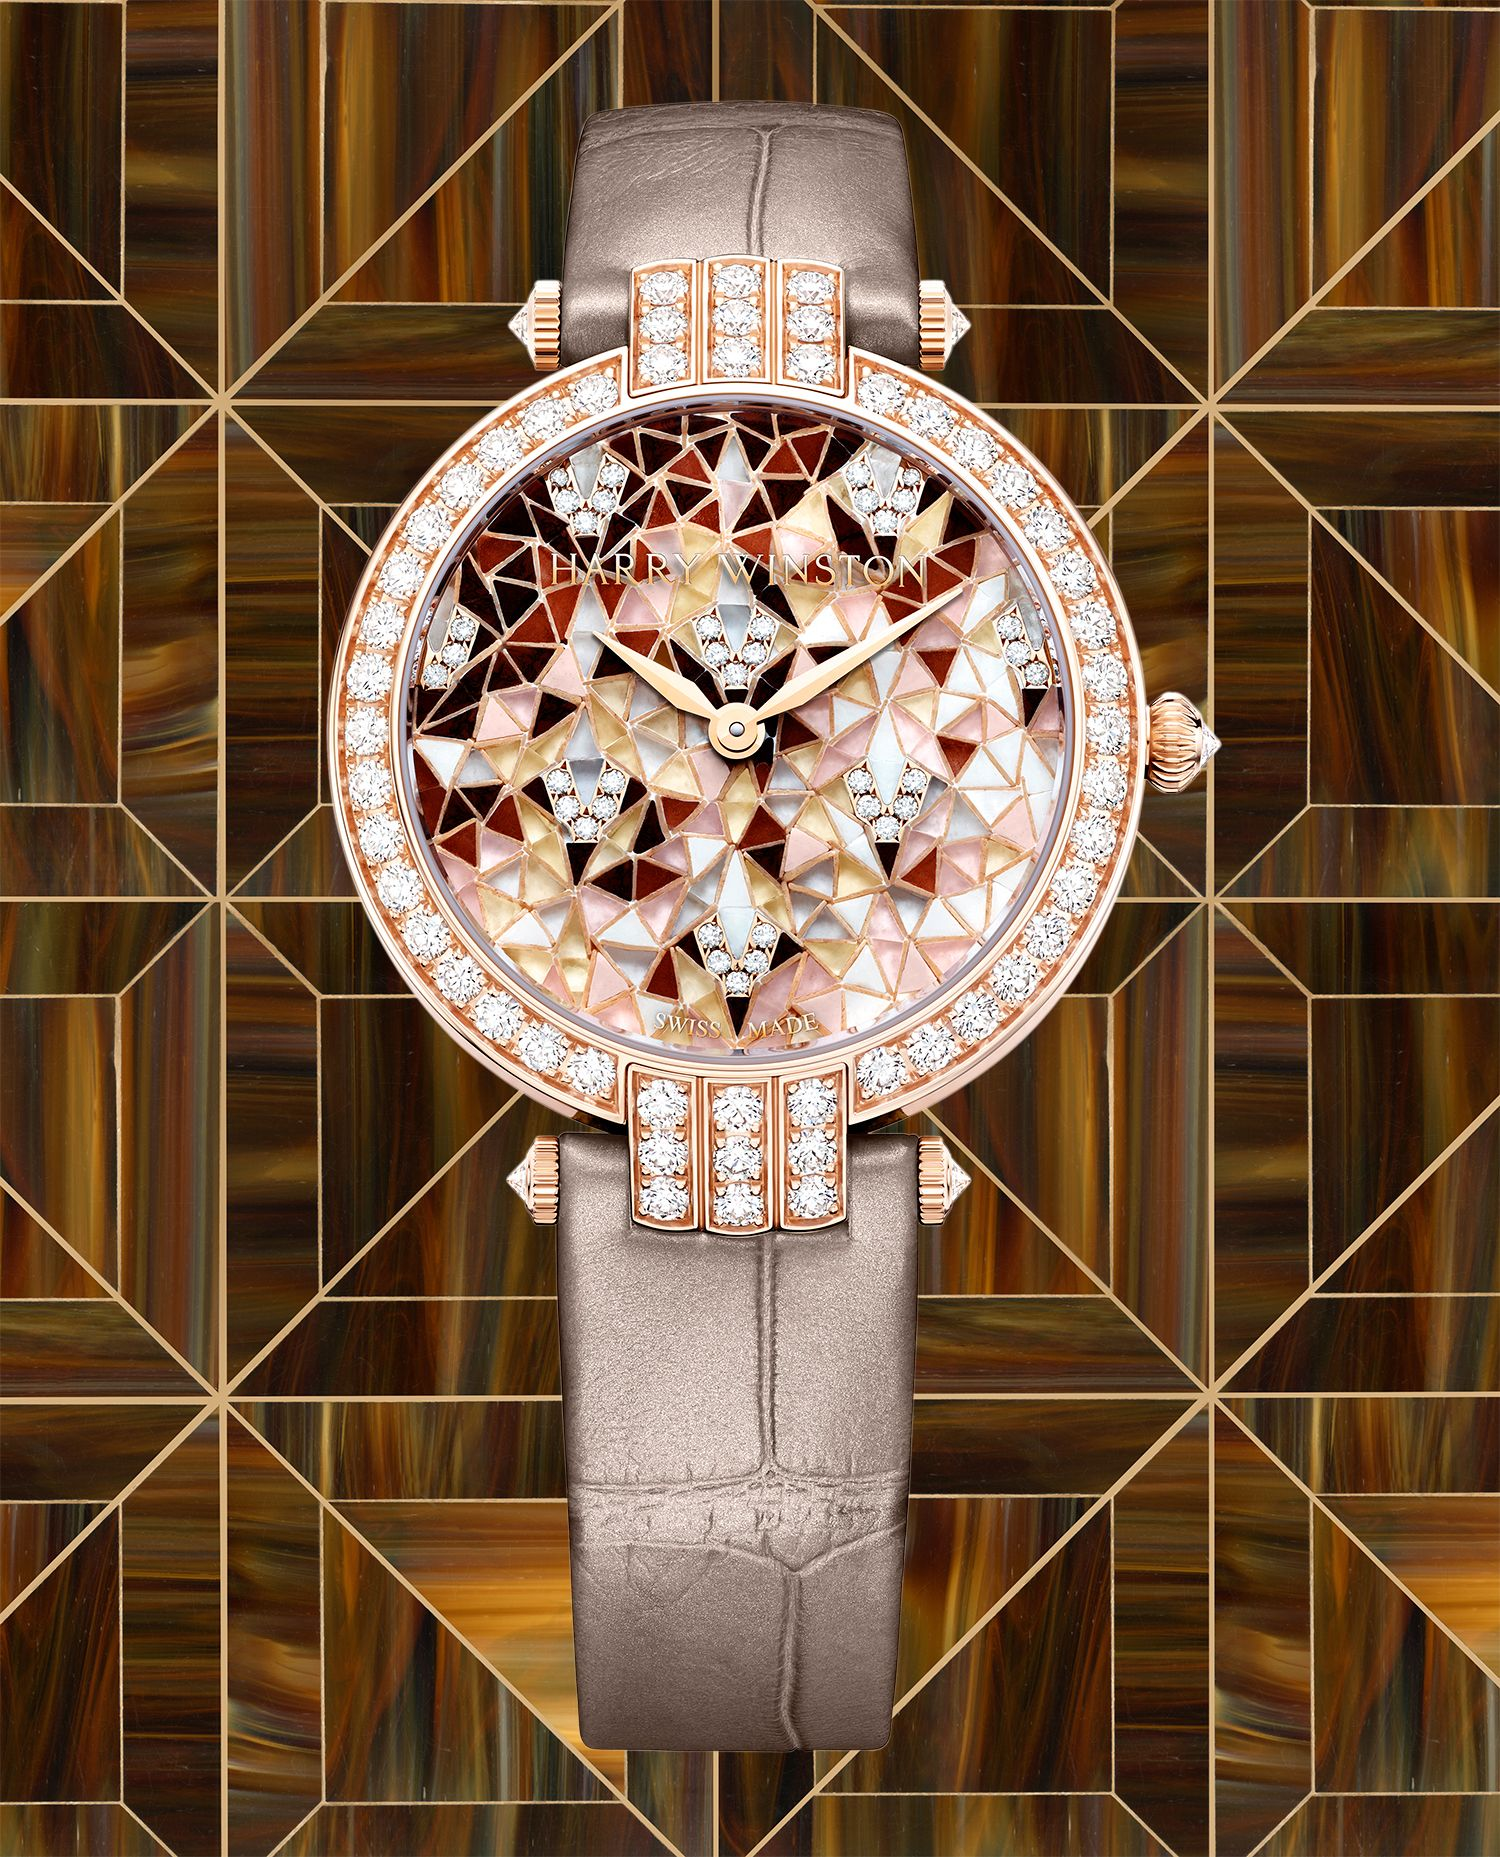 The Fine Art of Mosaics is on Elegant Display in New Watches from Harry Winston